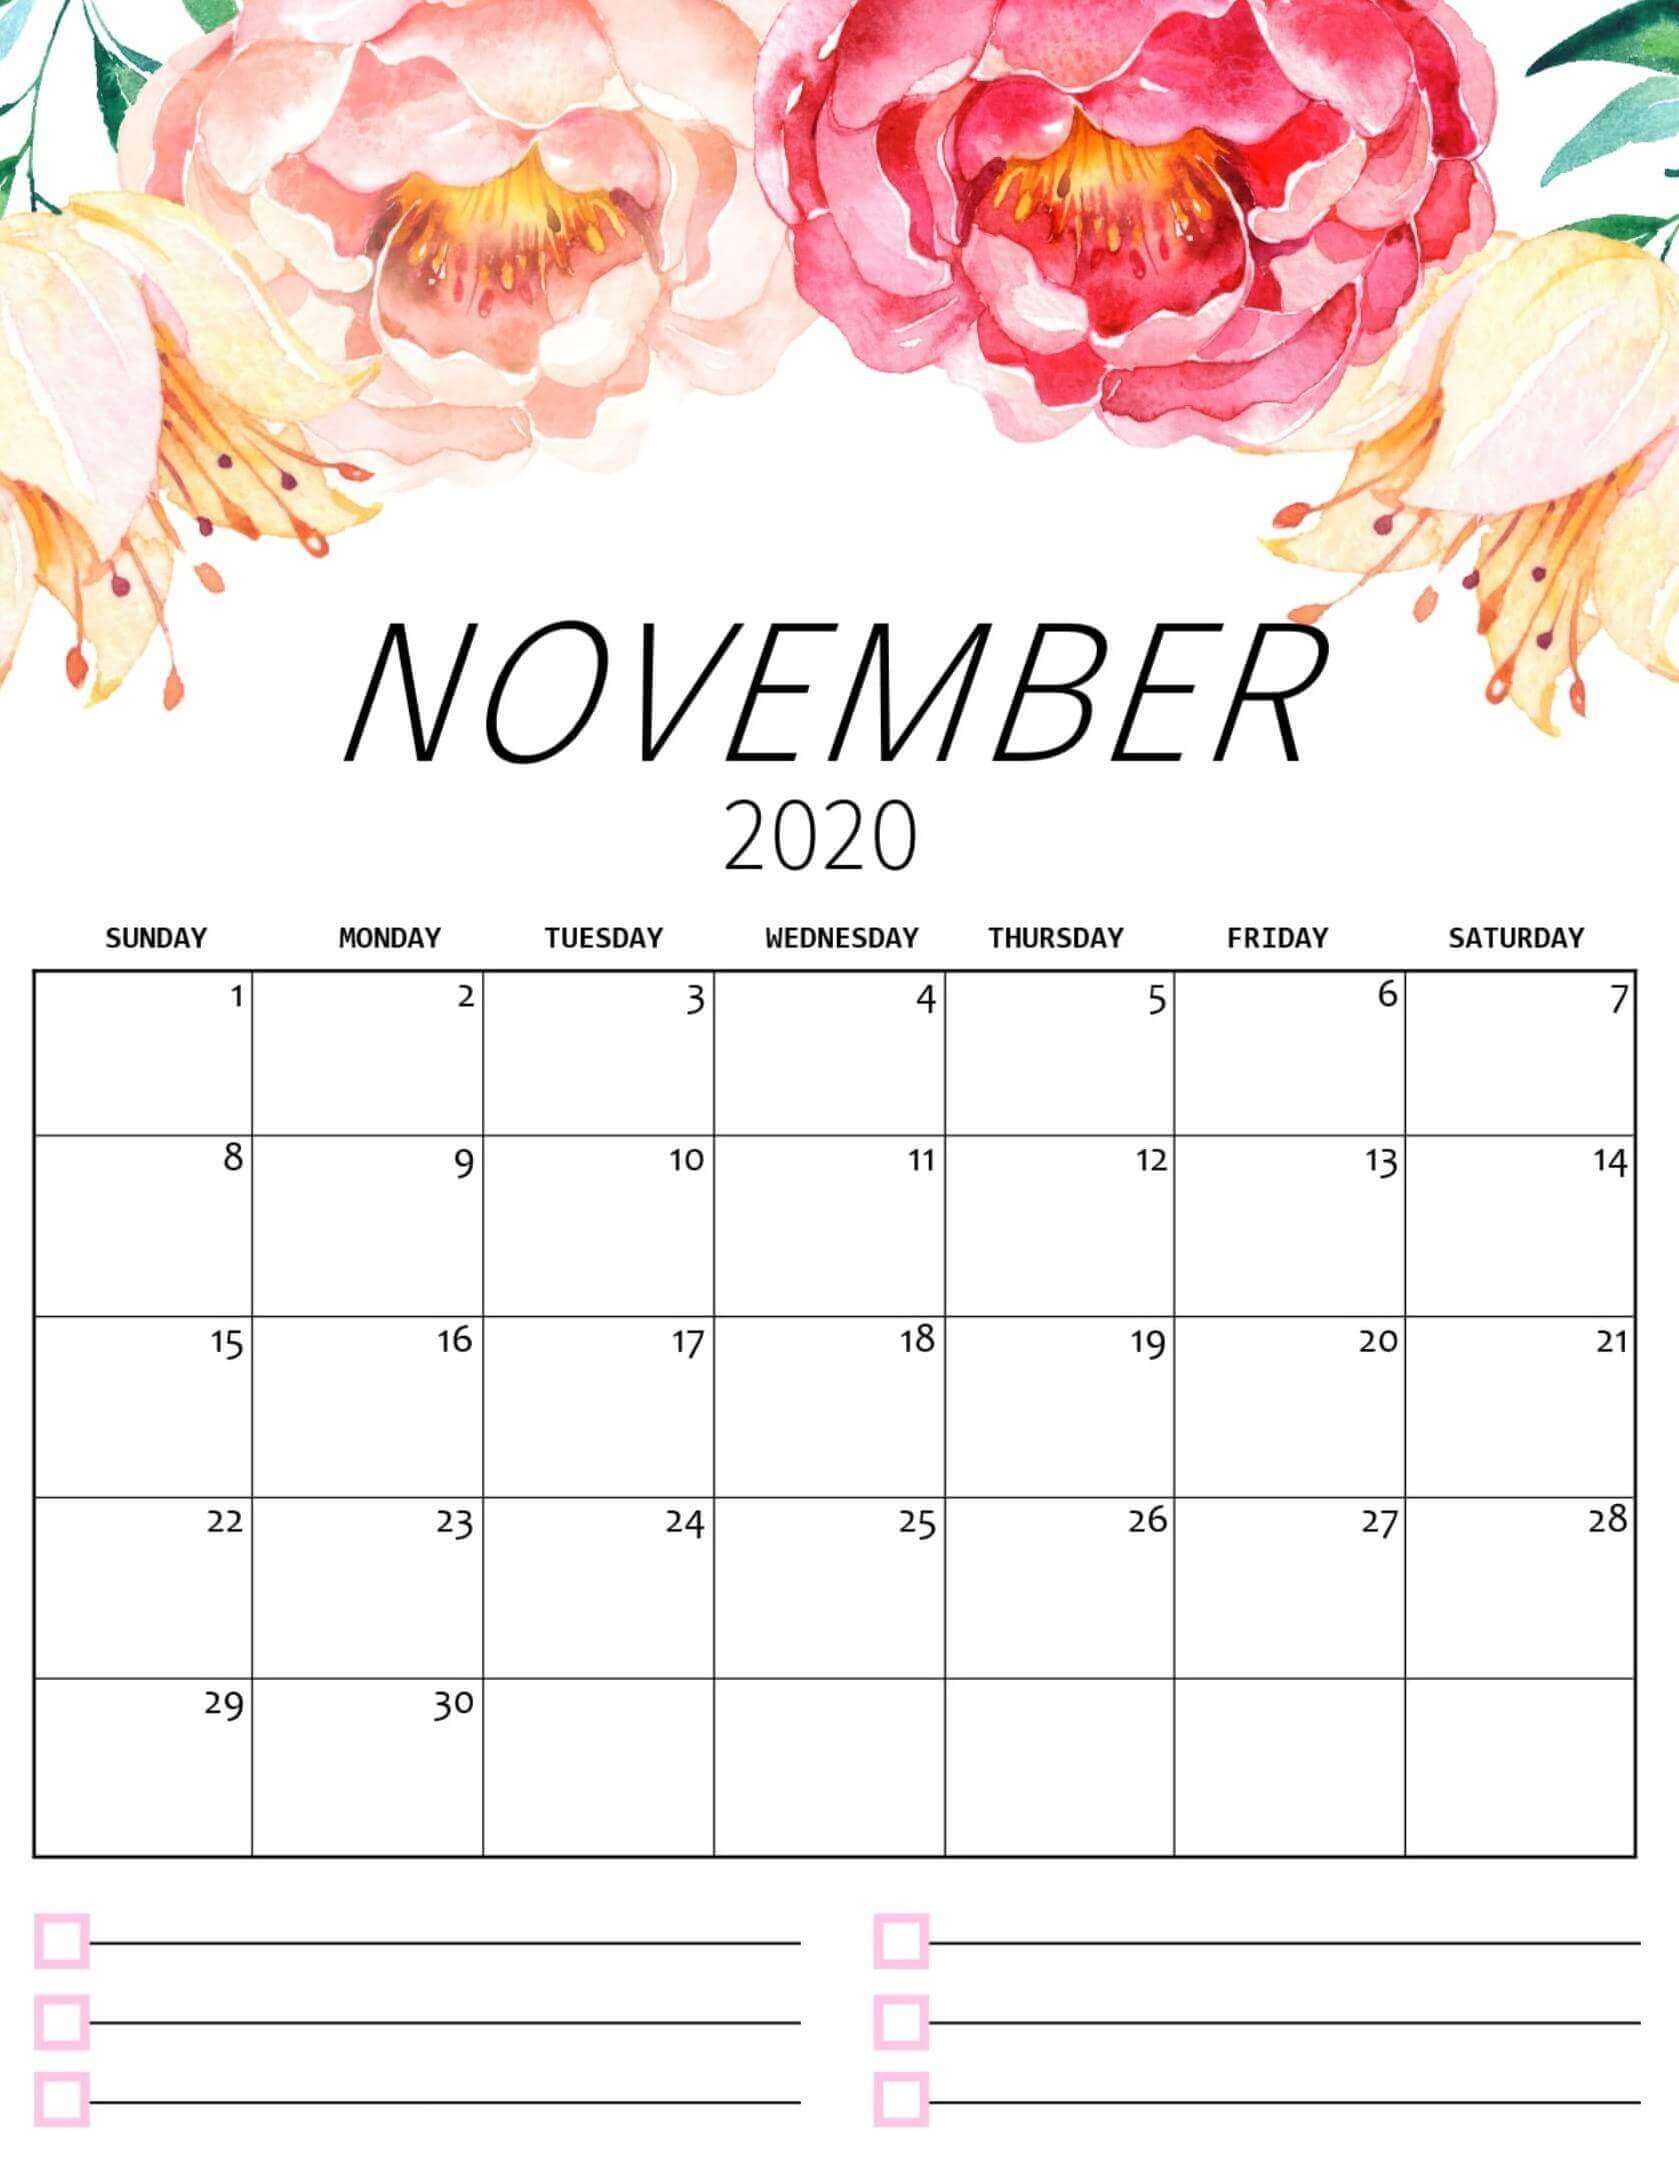 Floral November 2020 Wall Calendar Wallpaper